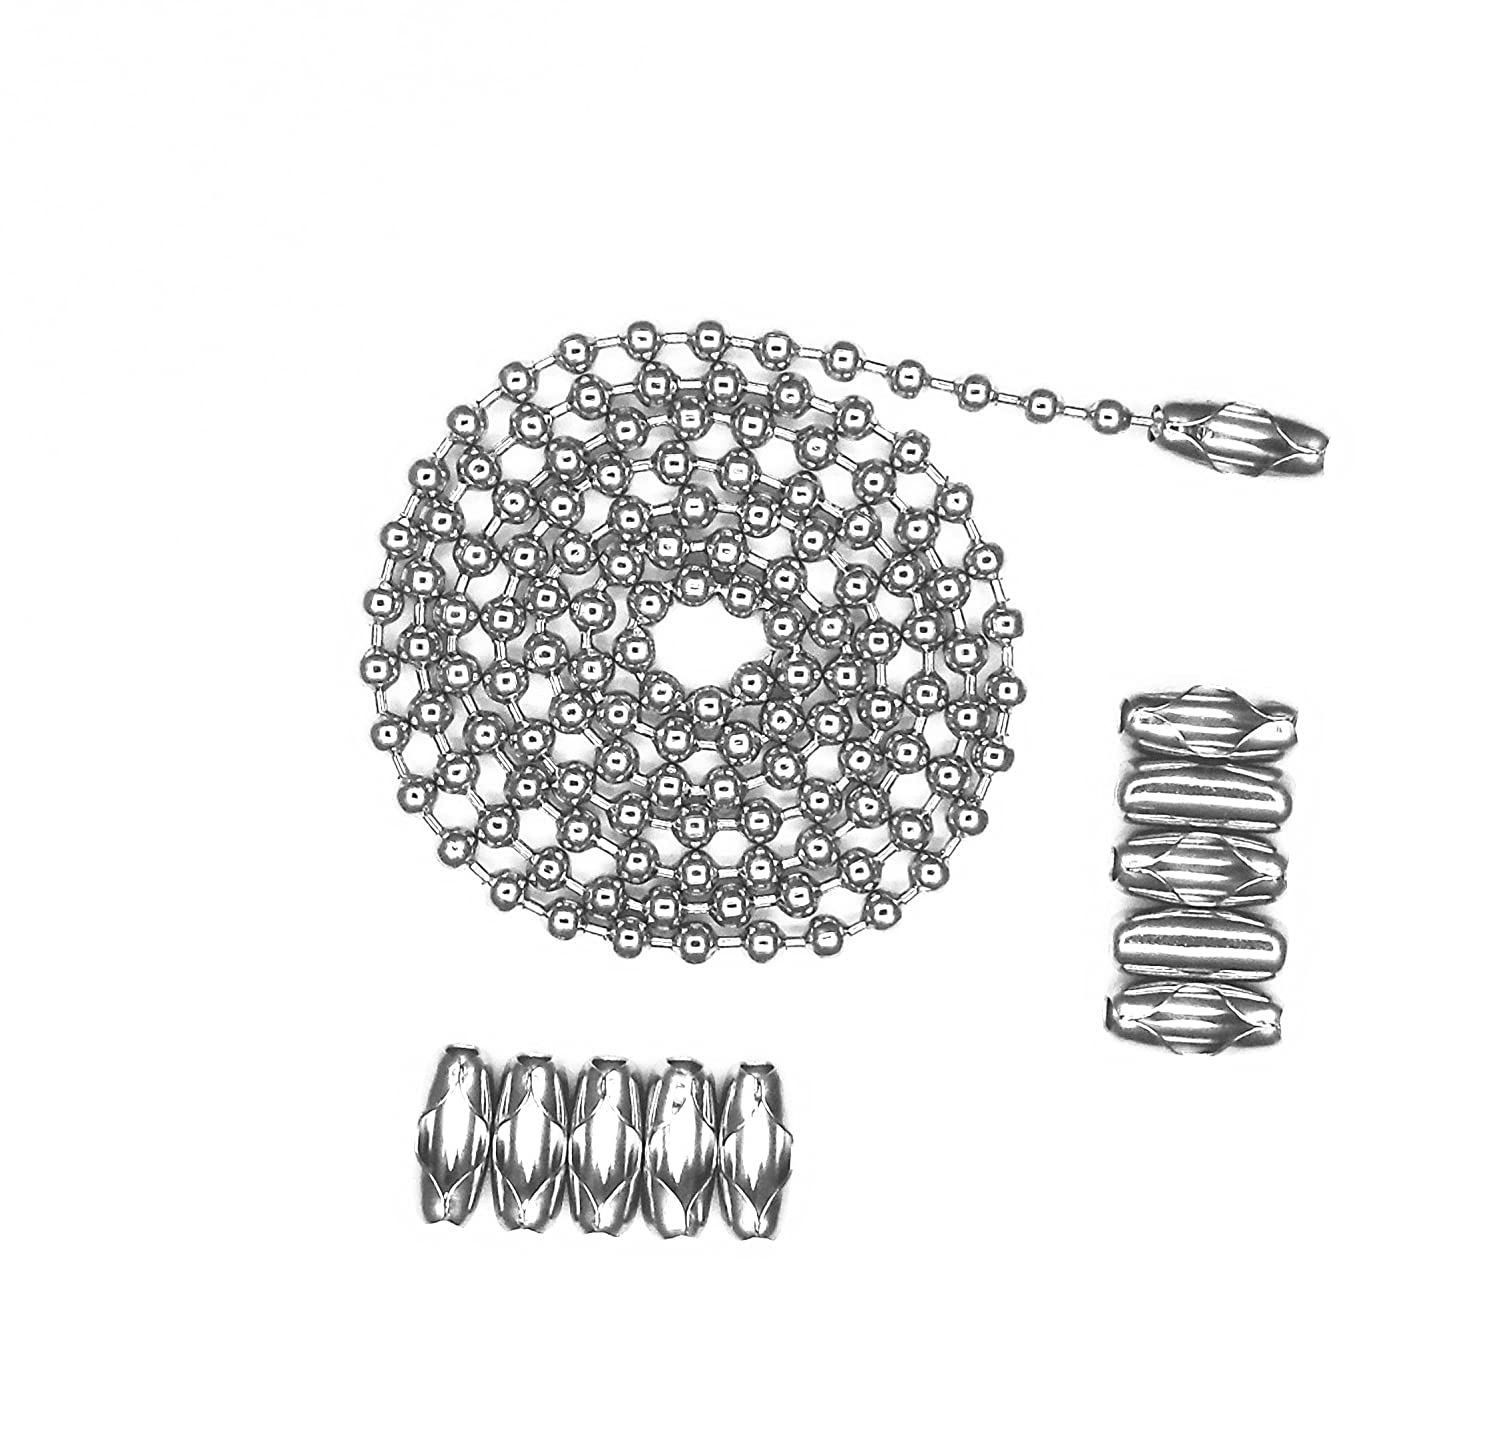 #8, 10 Feet Glory Qin 4.0mm Stainless Steel Ball Chains /& 10 Matching connectors